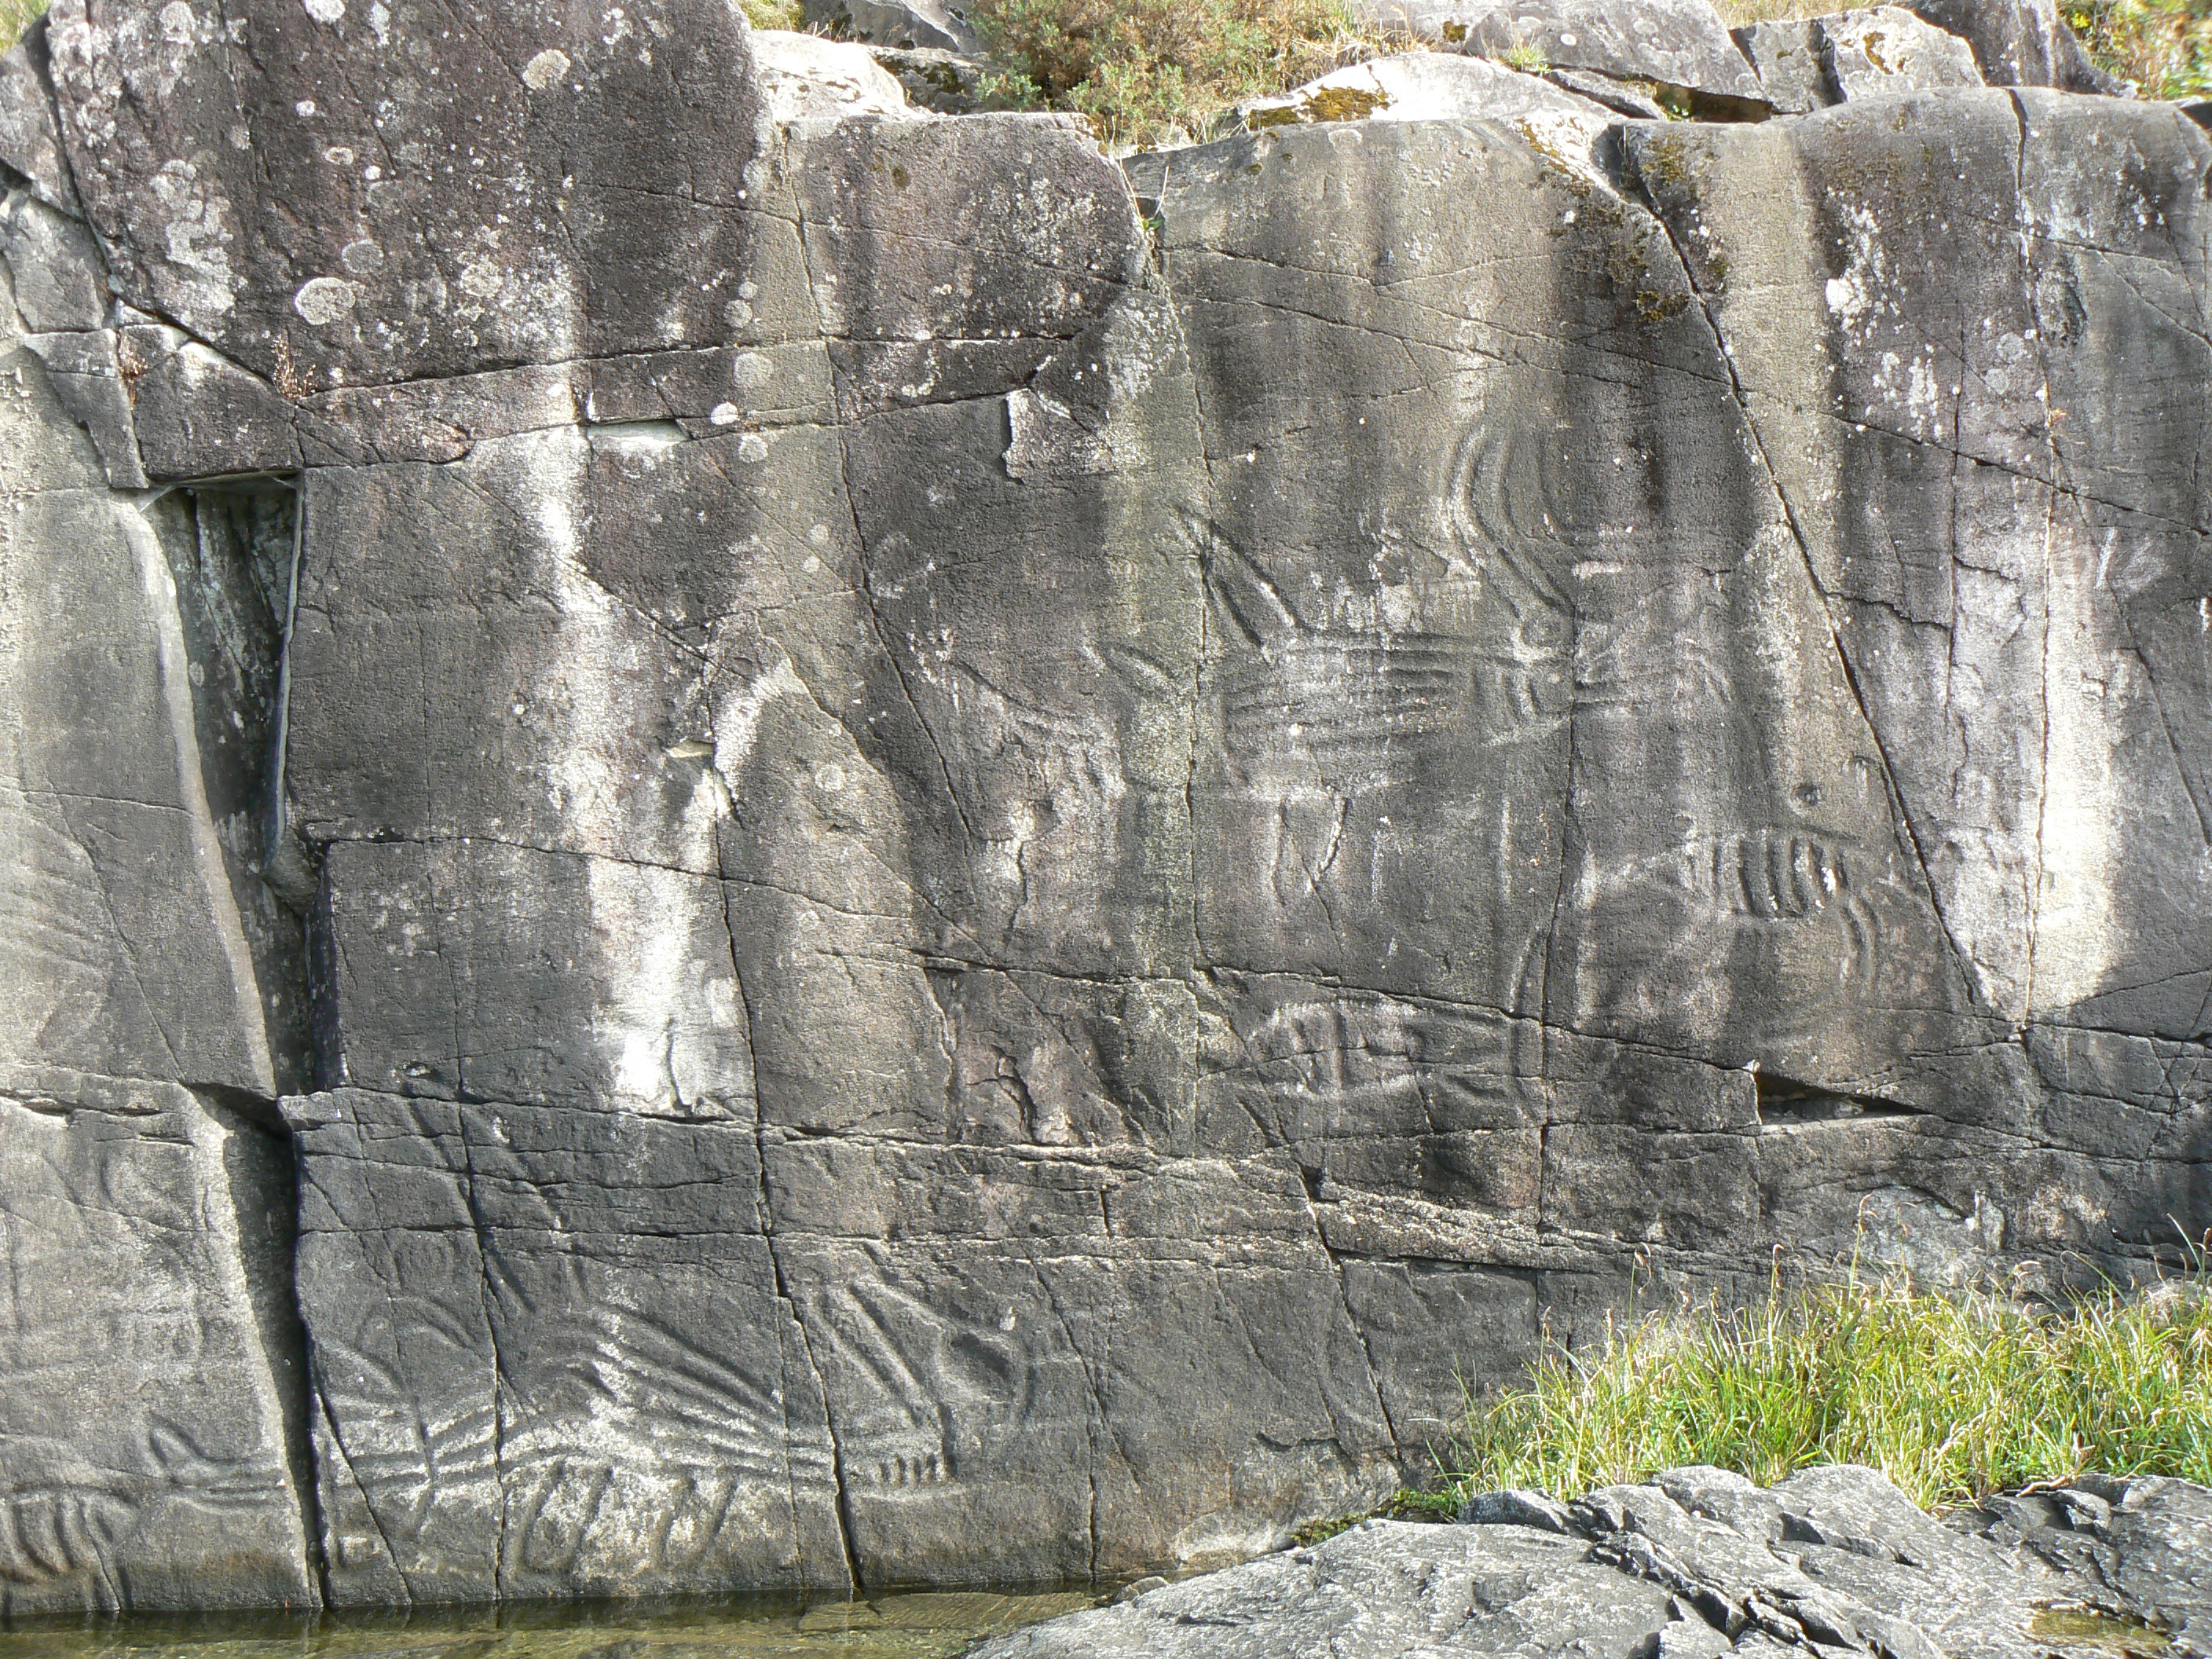 Petroglyphs at Sproat Lake Provincial Park